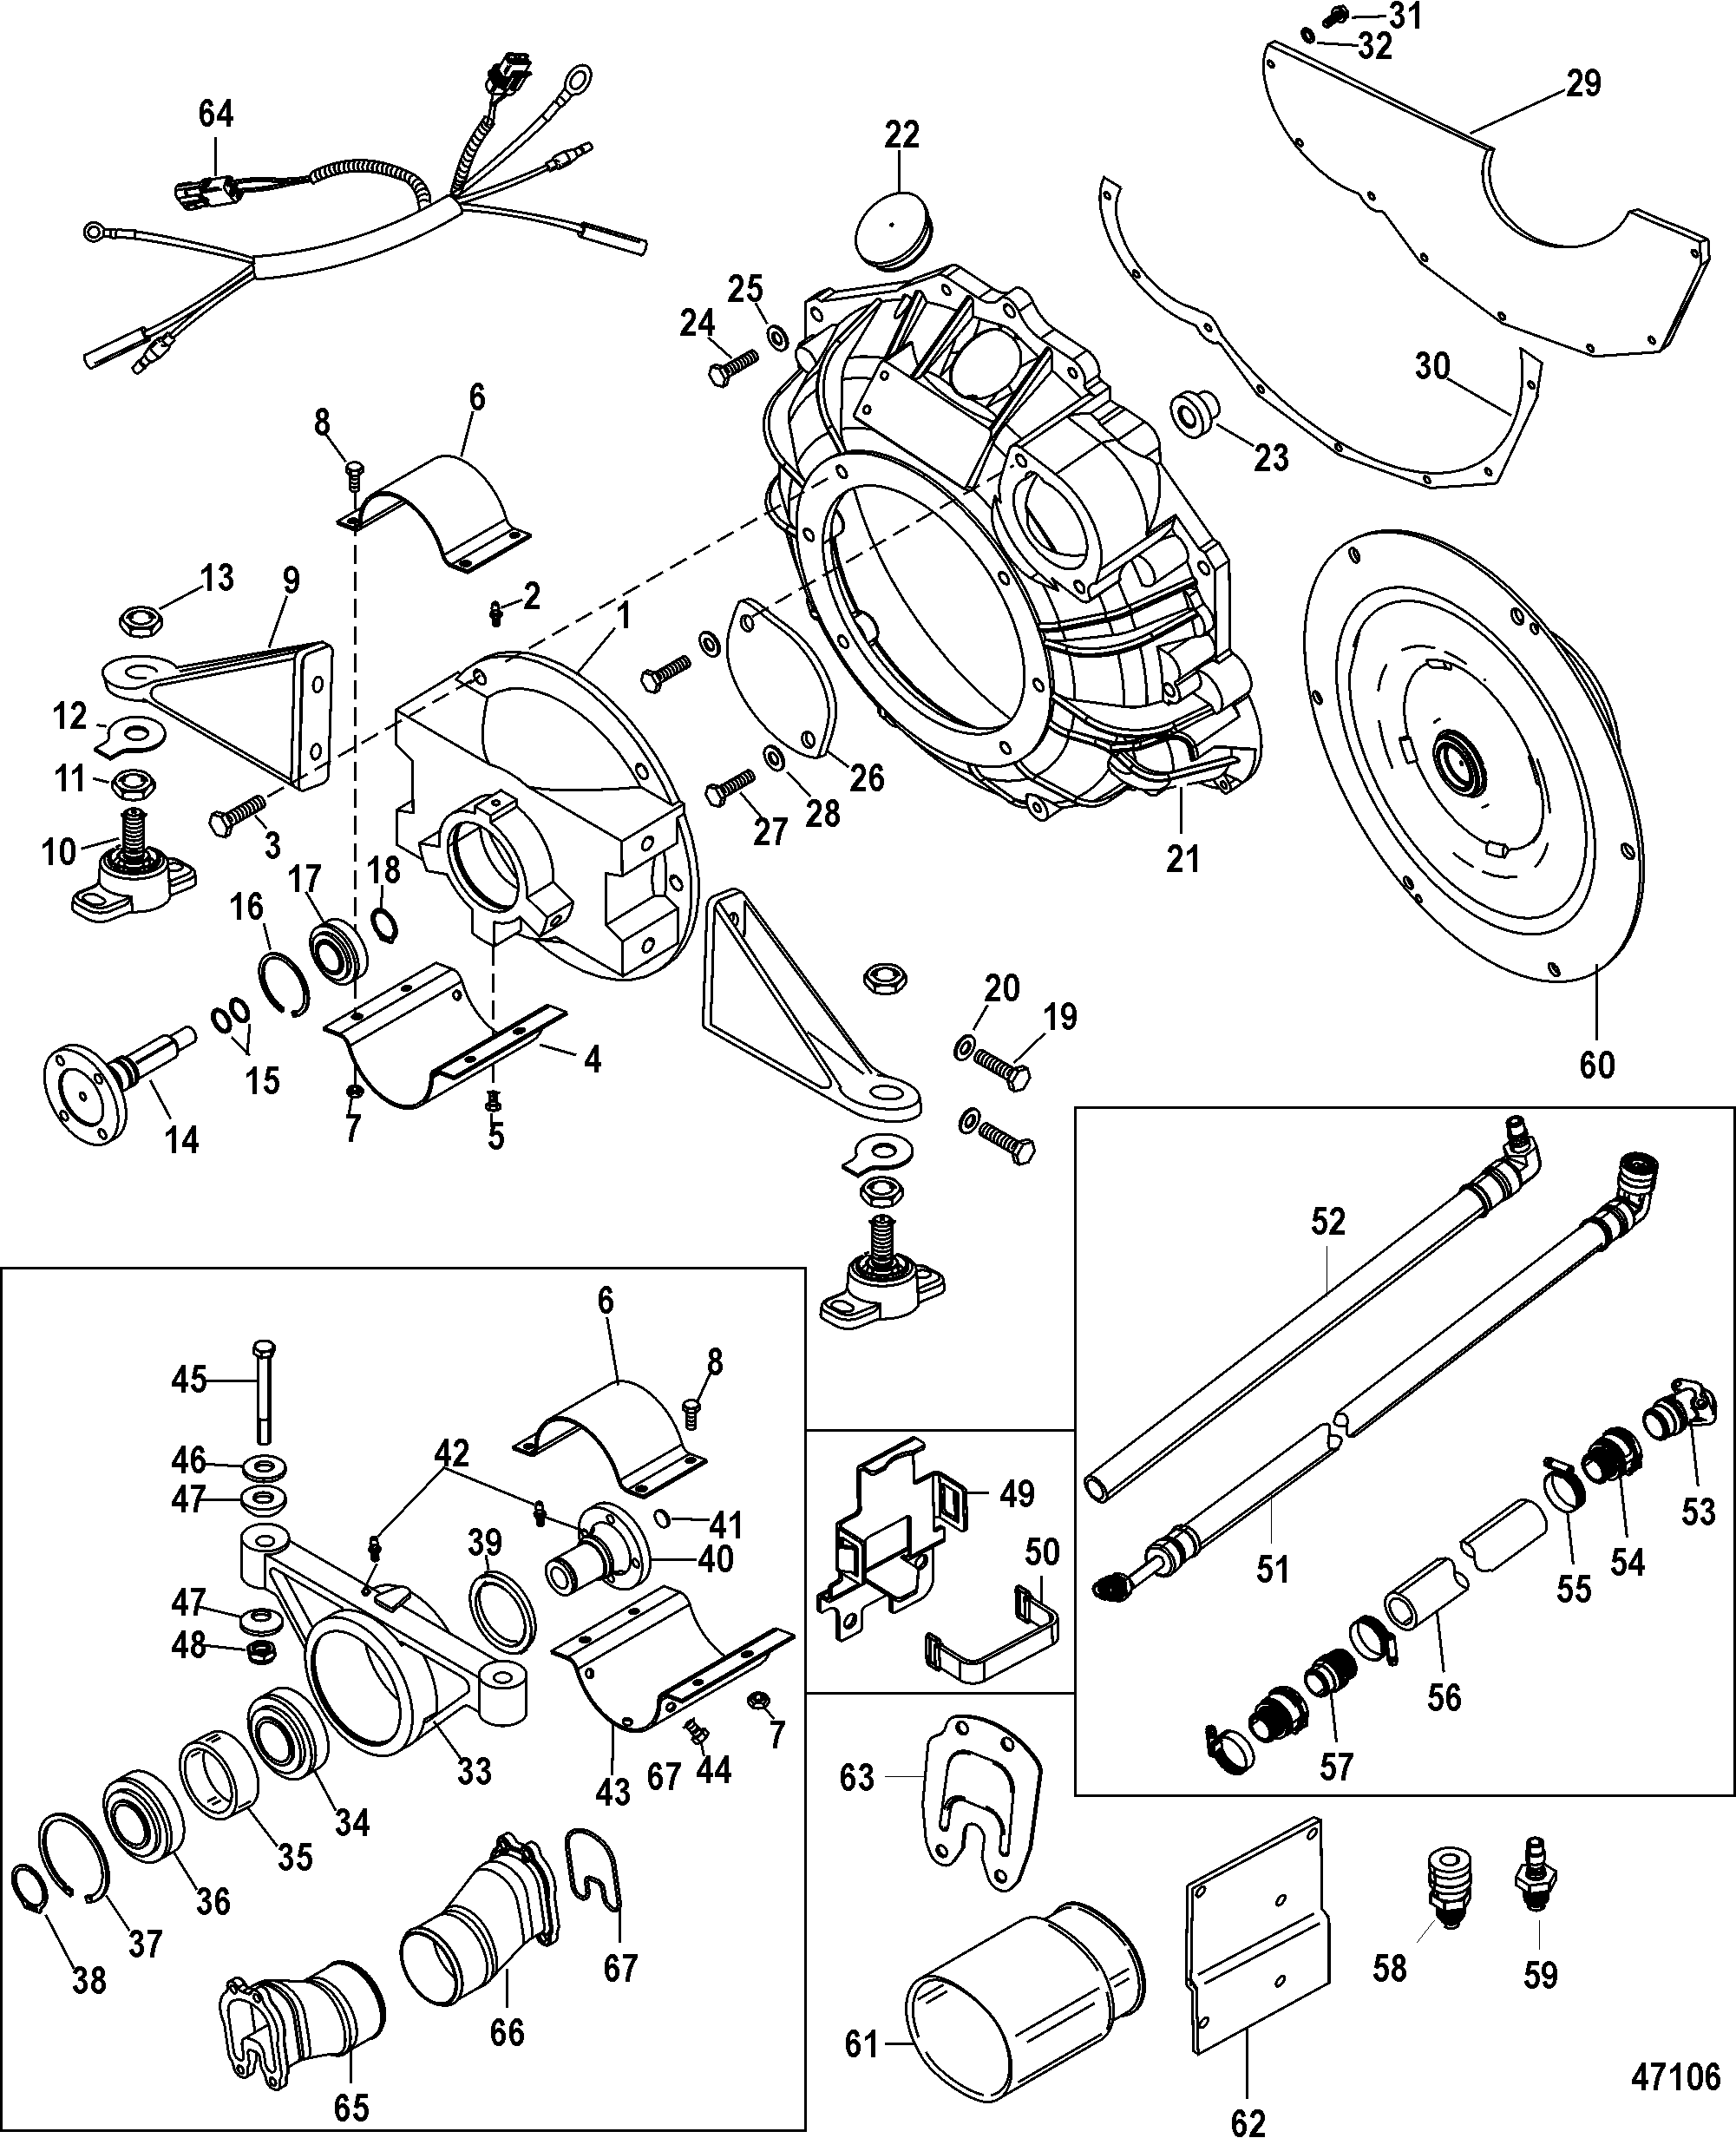 Jackshaft Main Kit For Mercruiser 496 Mag Sterndrive